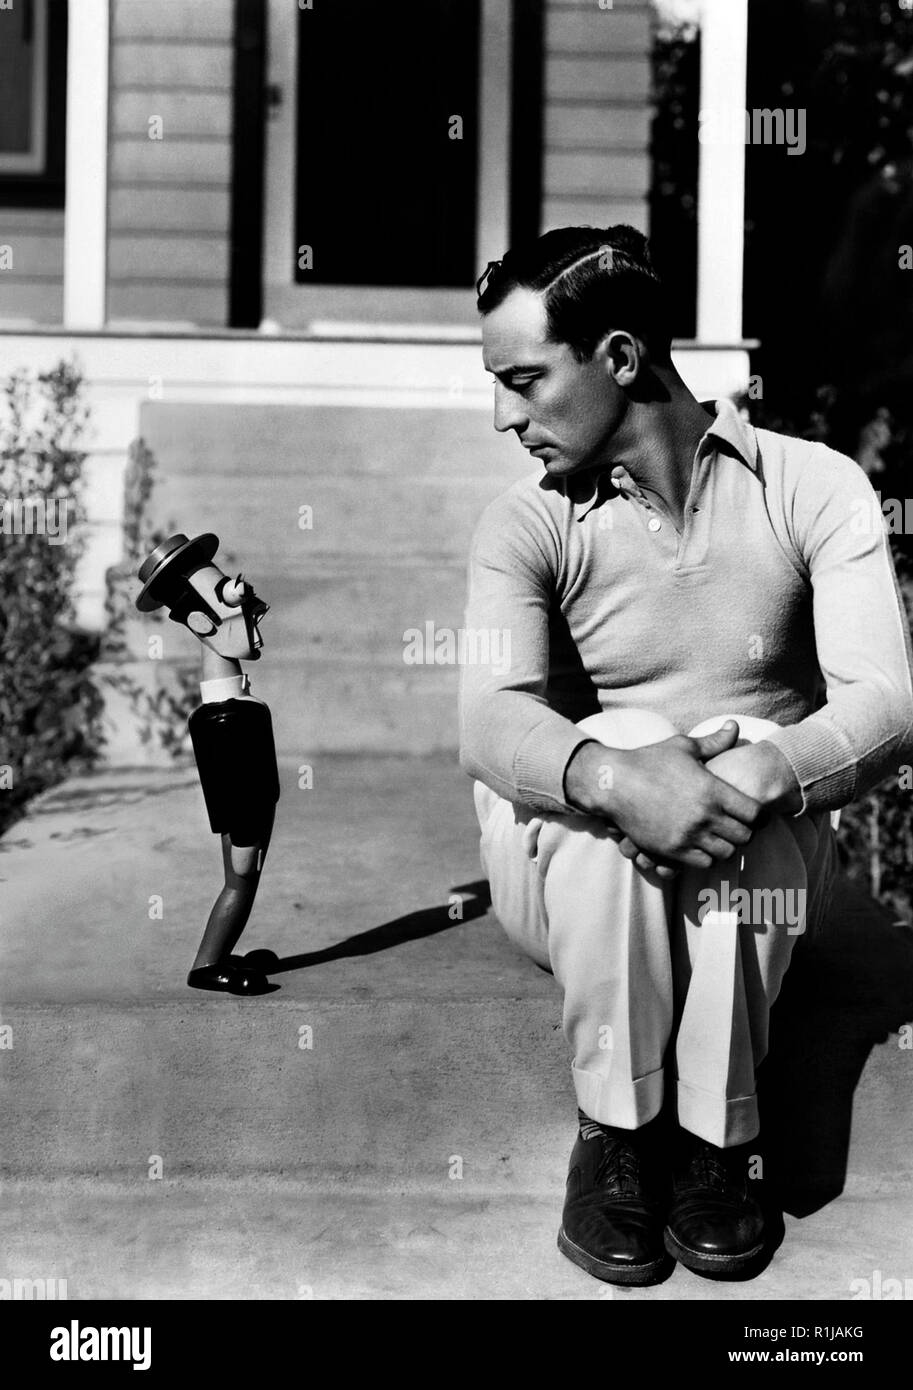 17th December 1930: American silent screen comedian and actor Buster Keaton (1895-1966), known as 'The King of Deadpan' sits beside a model resembling himself. Credit: Hollywood Photo Archive / MediaPunch - Stock Image